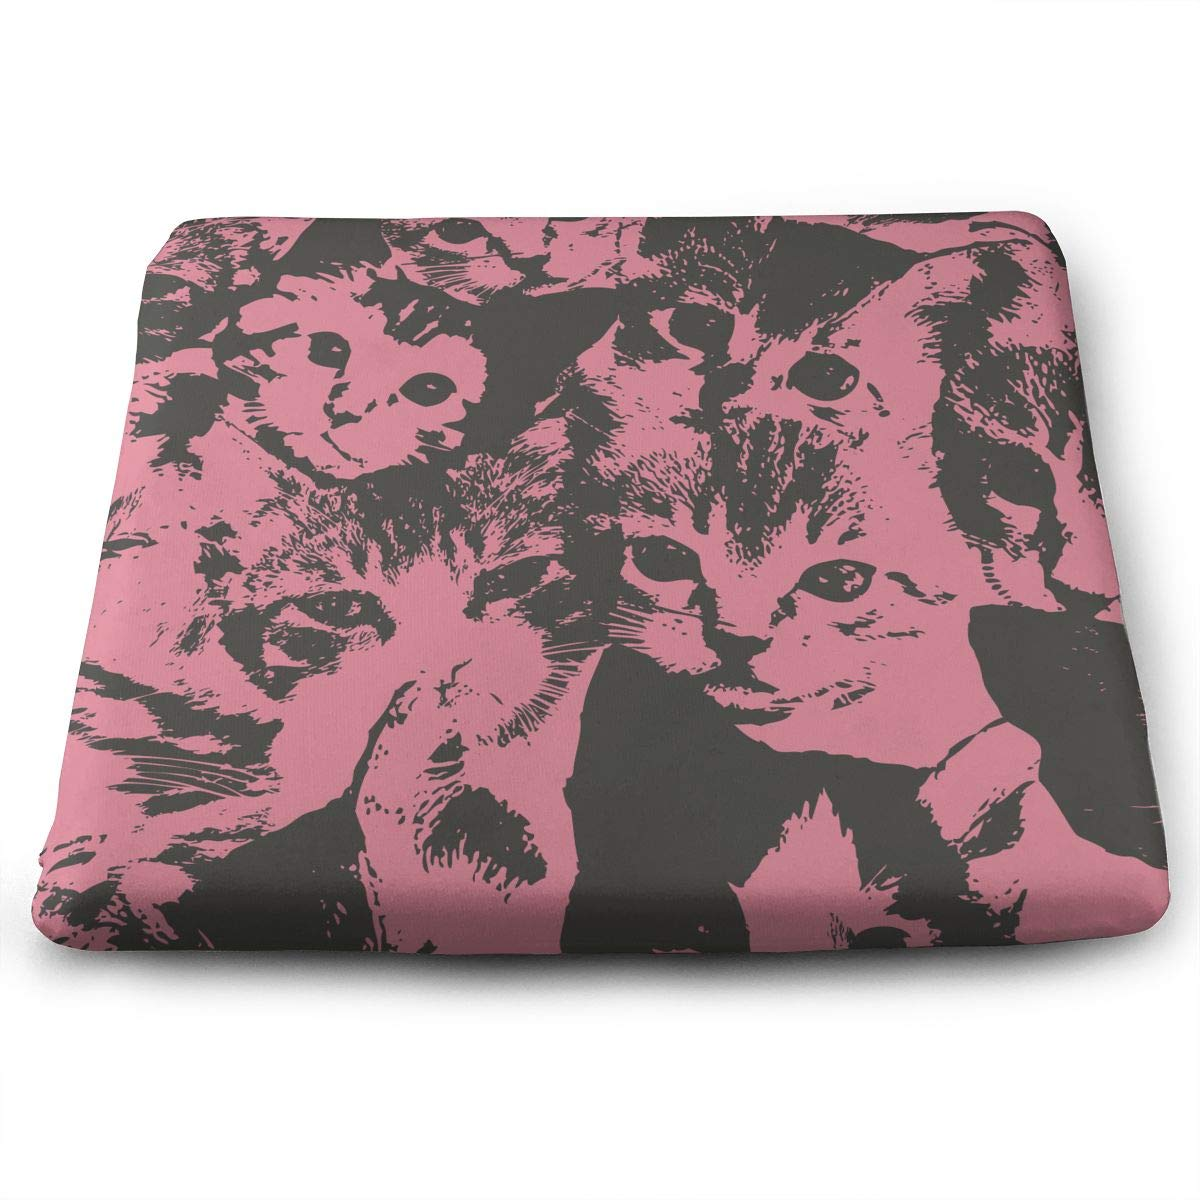 TLDRZD Novelty Perfect Indoor Outdoor Square Seat Cushion,Cute Cat Lightweight Chair Pads Memory Foam Filled for Patio,Office,Kitchen,Desk,Travel,Kids,Yoga